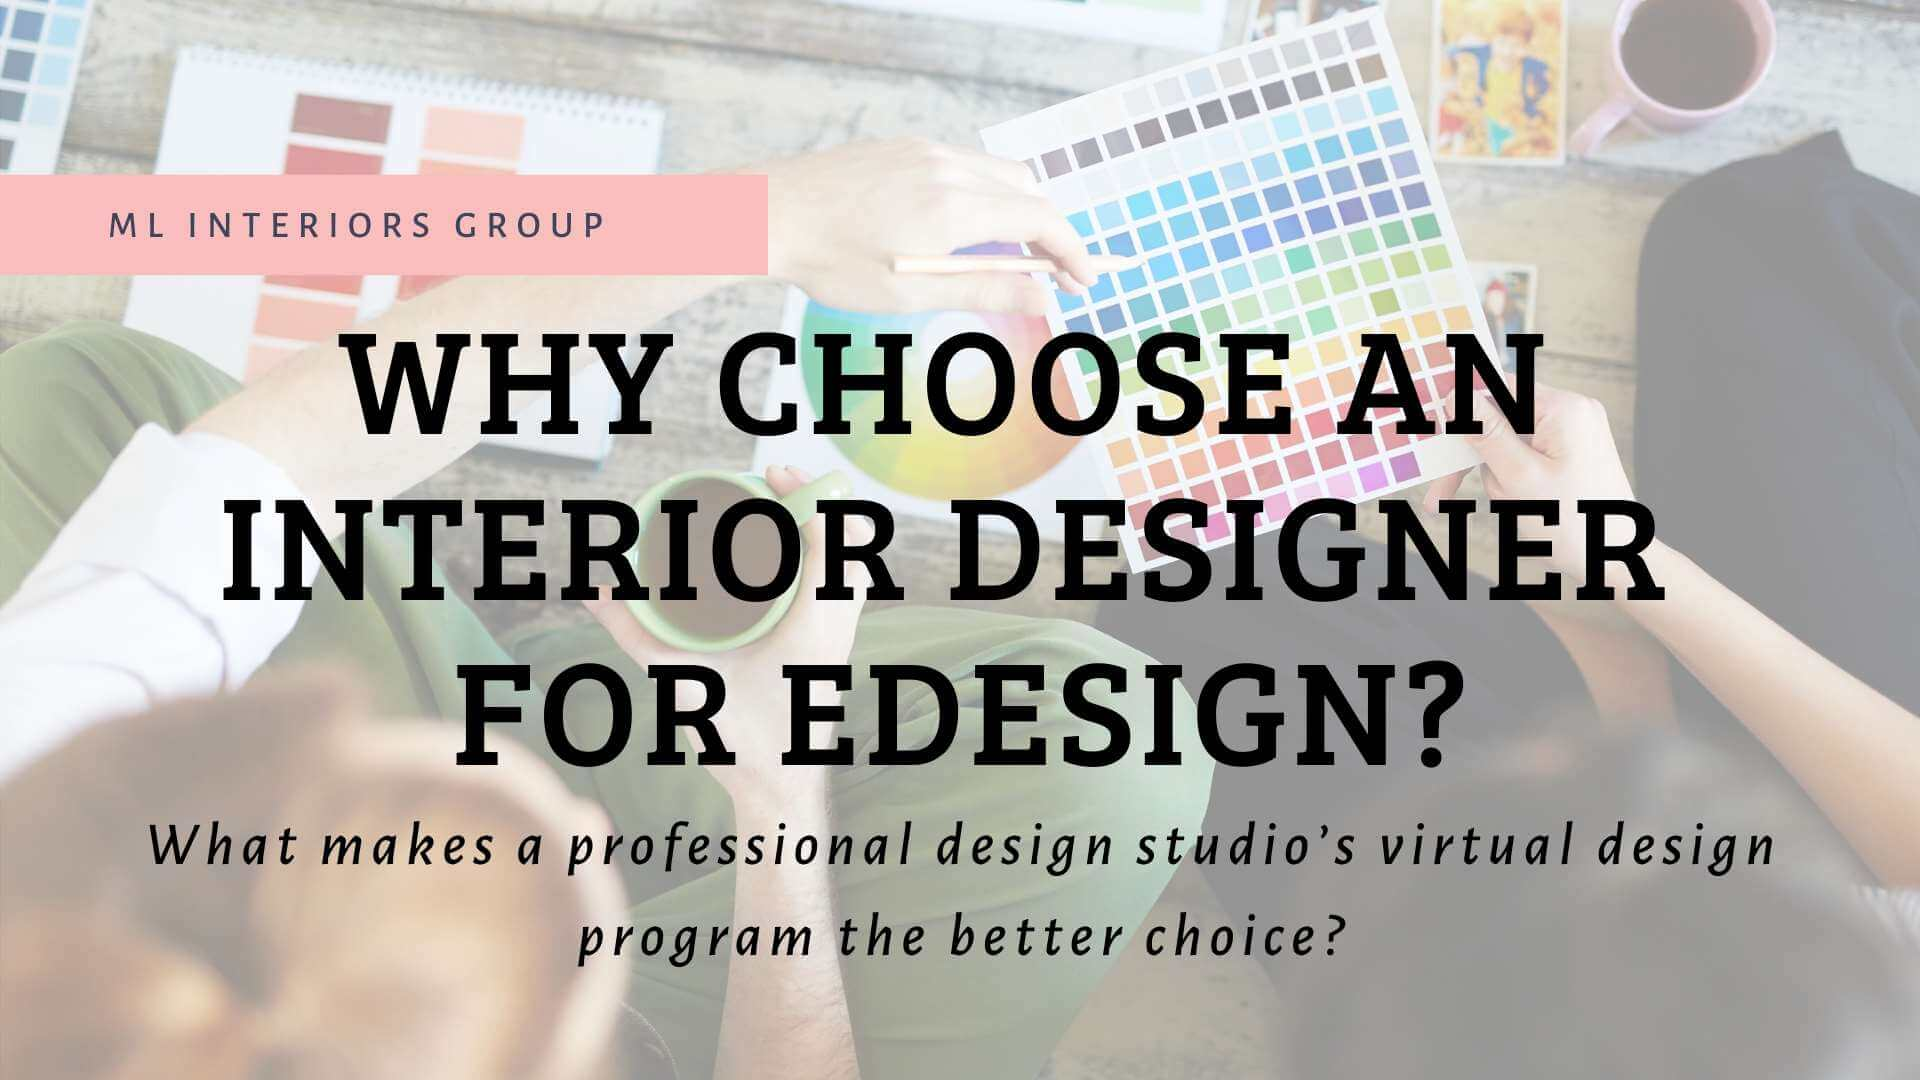 Why Choose an Interior Designer for eDesign?